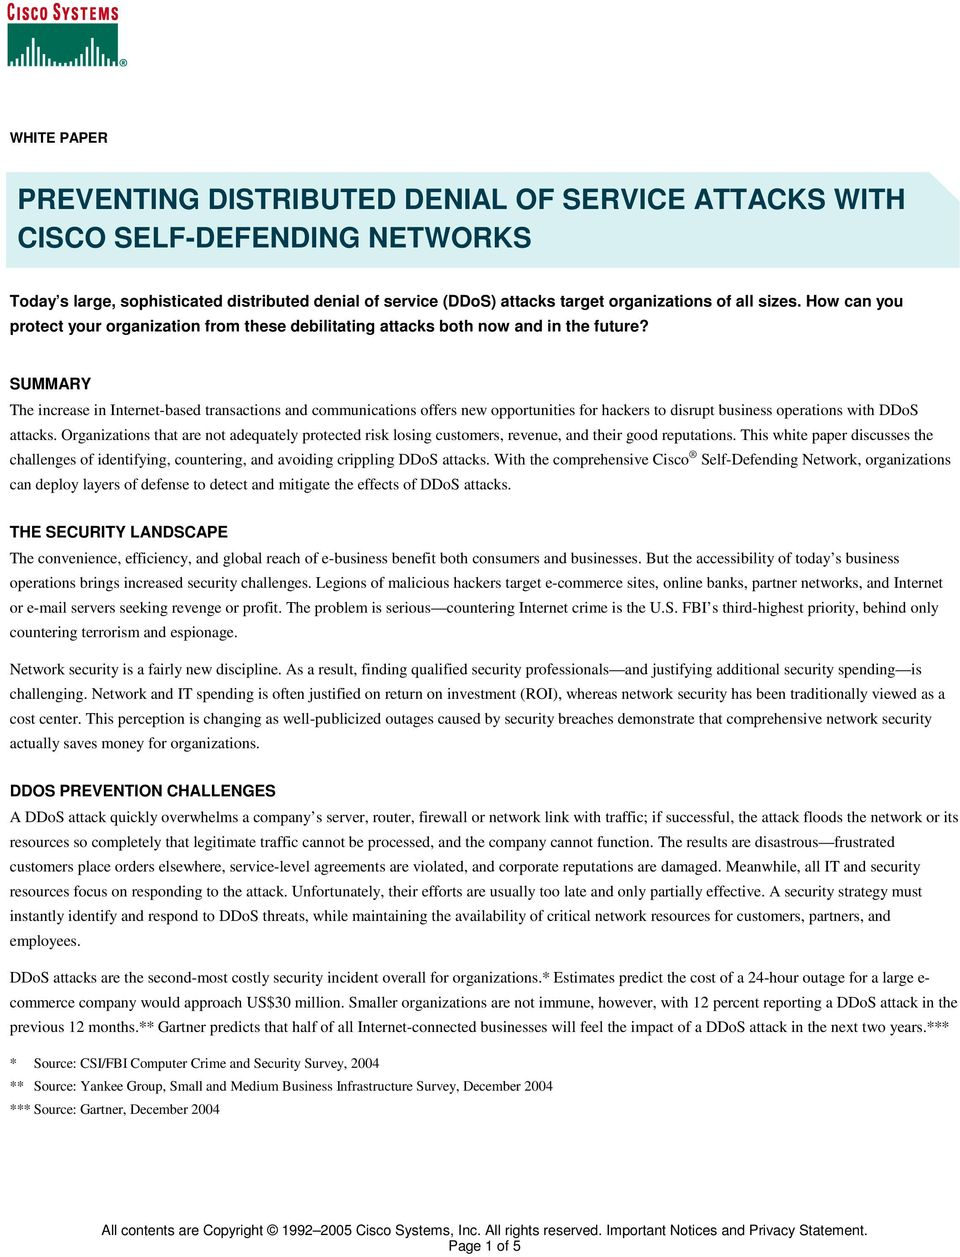 PREVENTING DISTRIBUTED DENIAL OF SERVICE ATTACKS WITH CISCO SELF